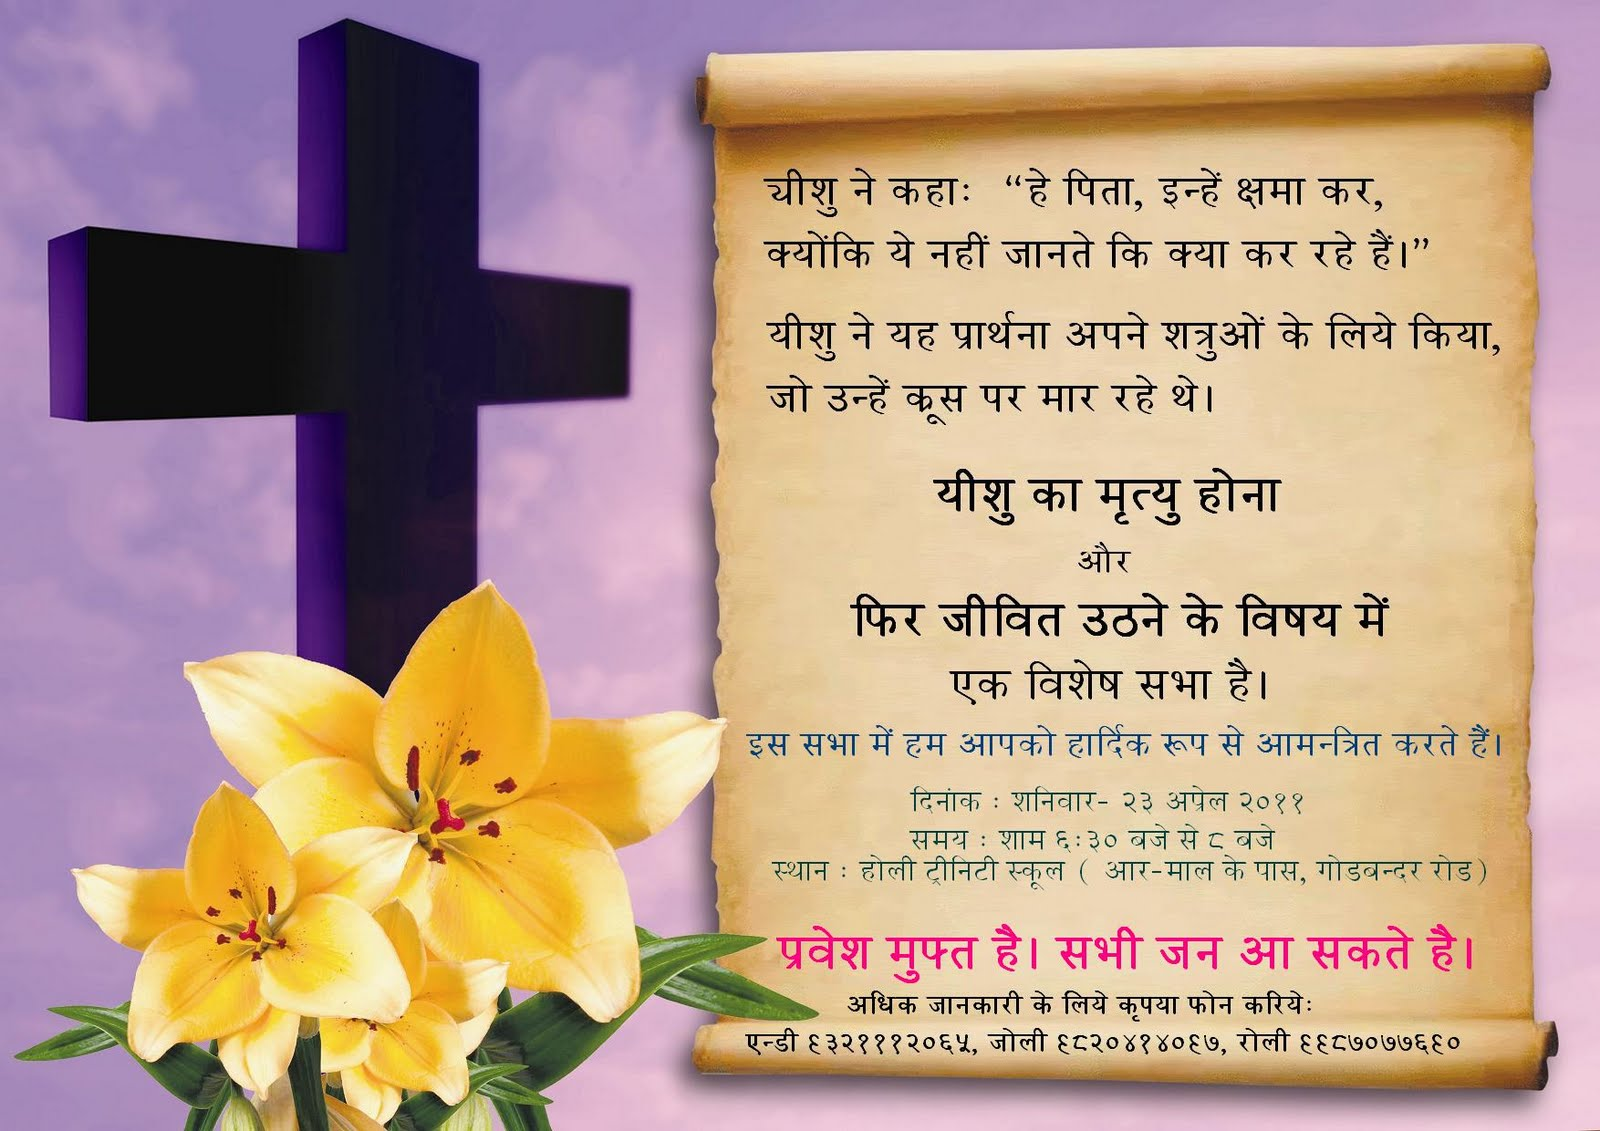 birthday invitation quotes for friends ; indian_wedding_invitation_sms_for_friends_4